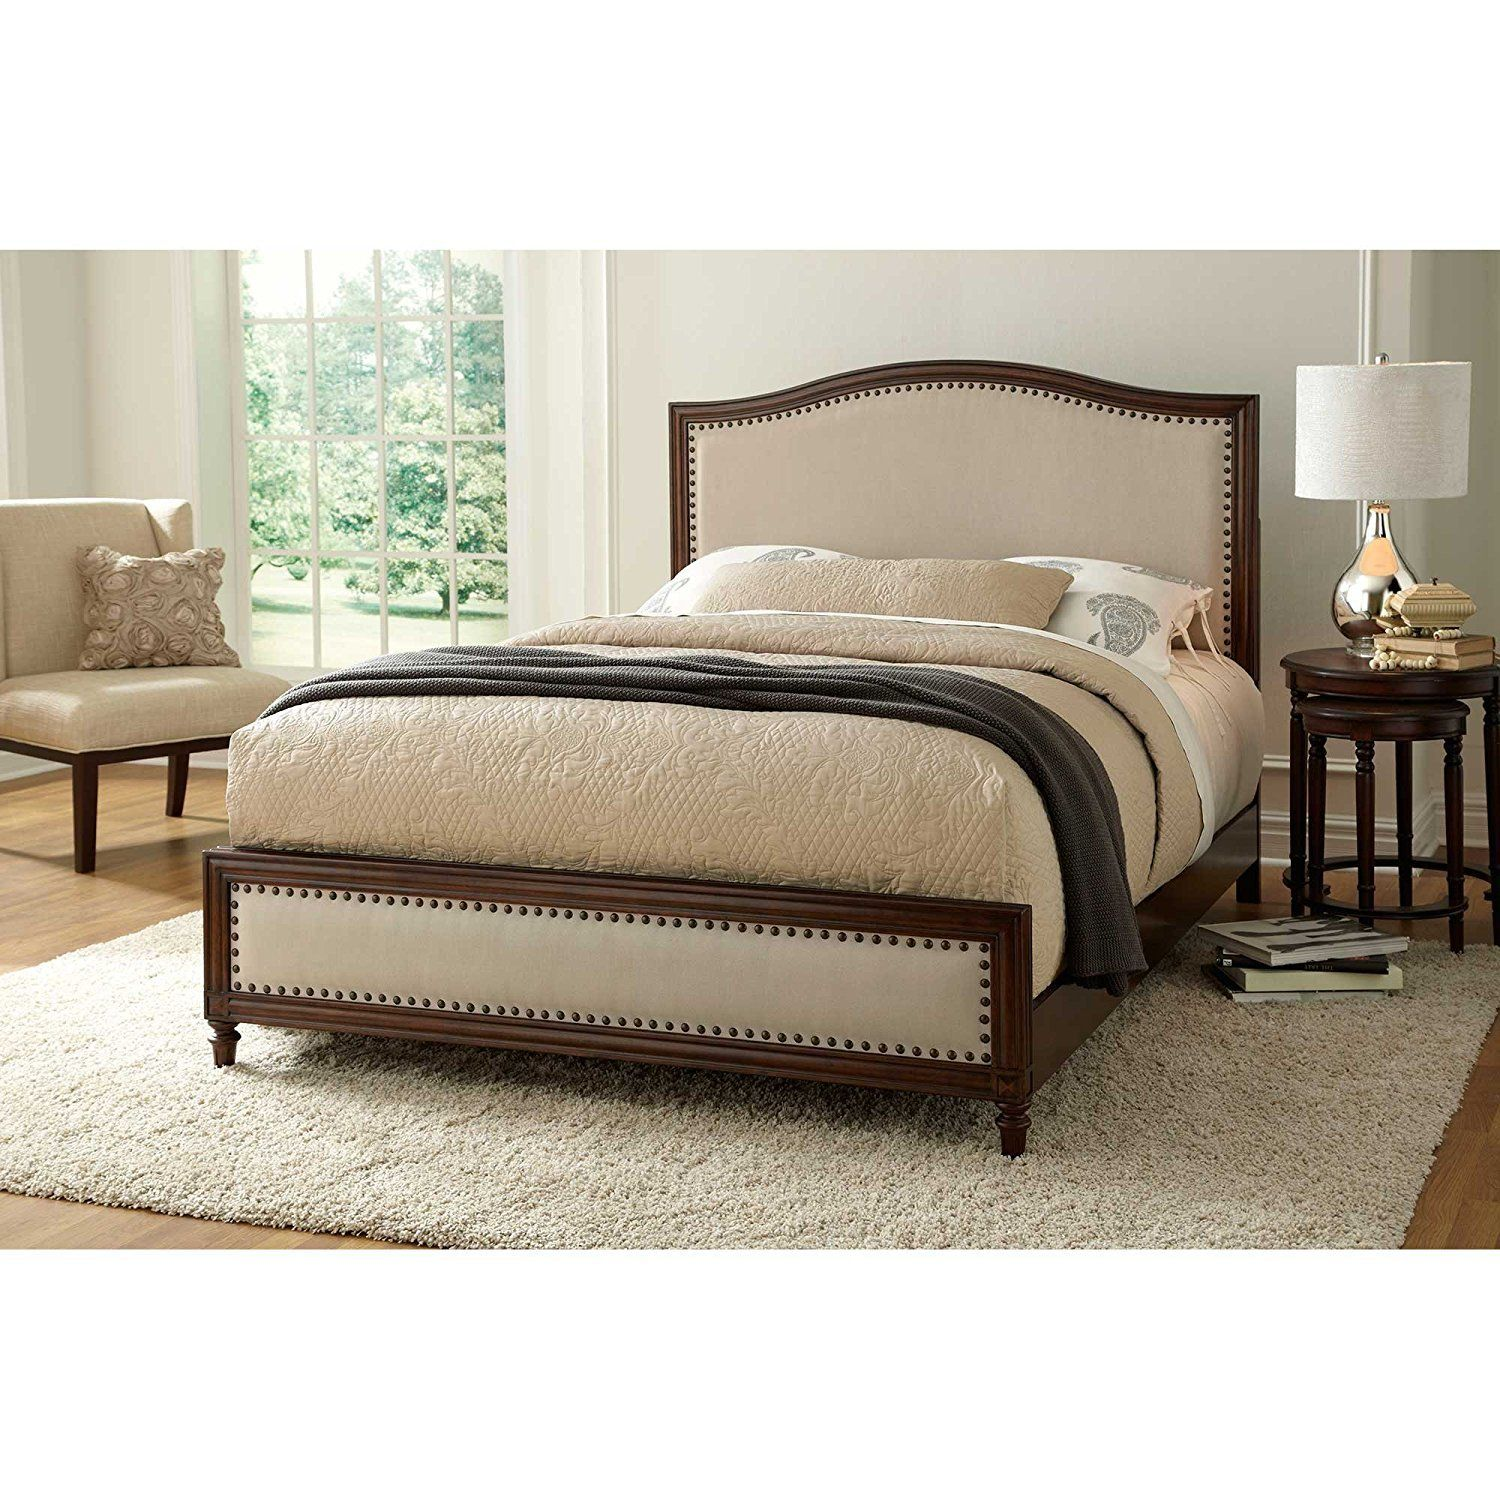 fashion bed group transitional grand over complete bed king size rh pinterest com